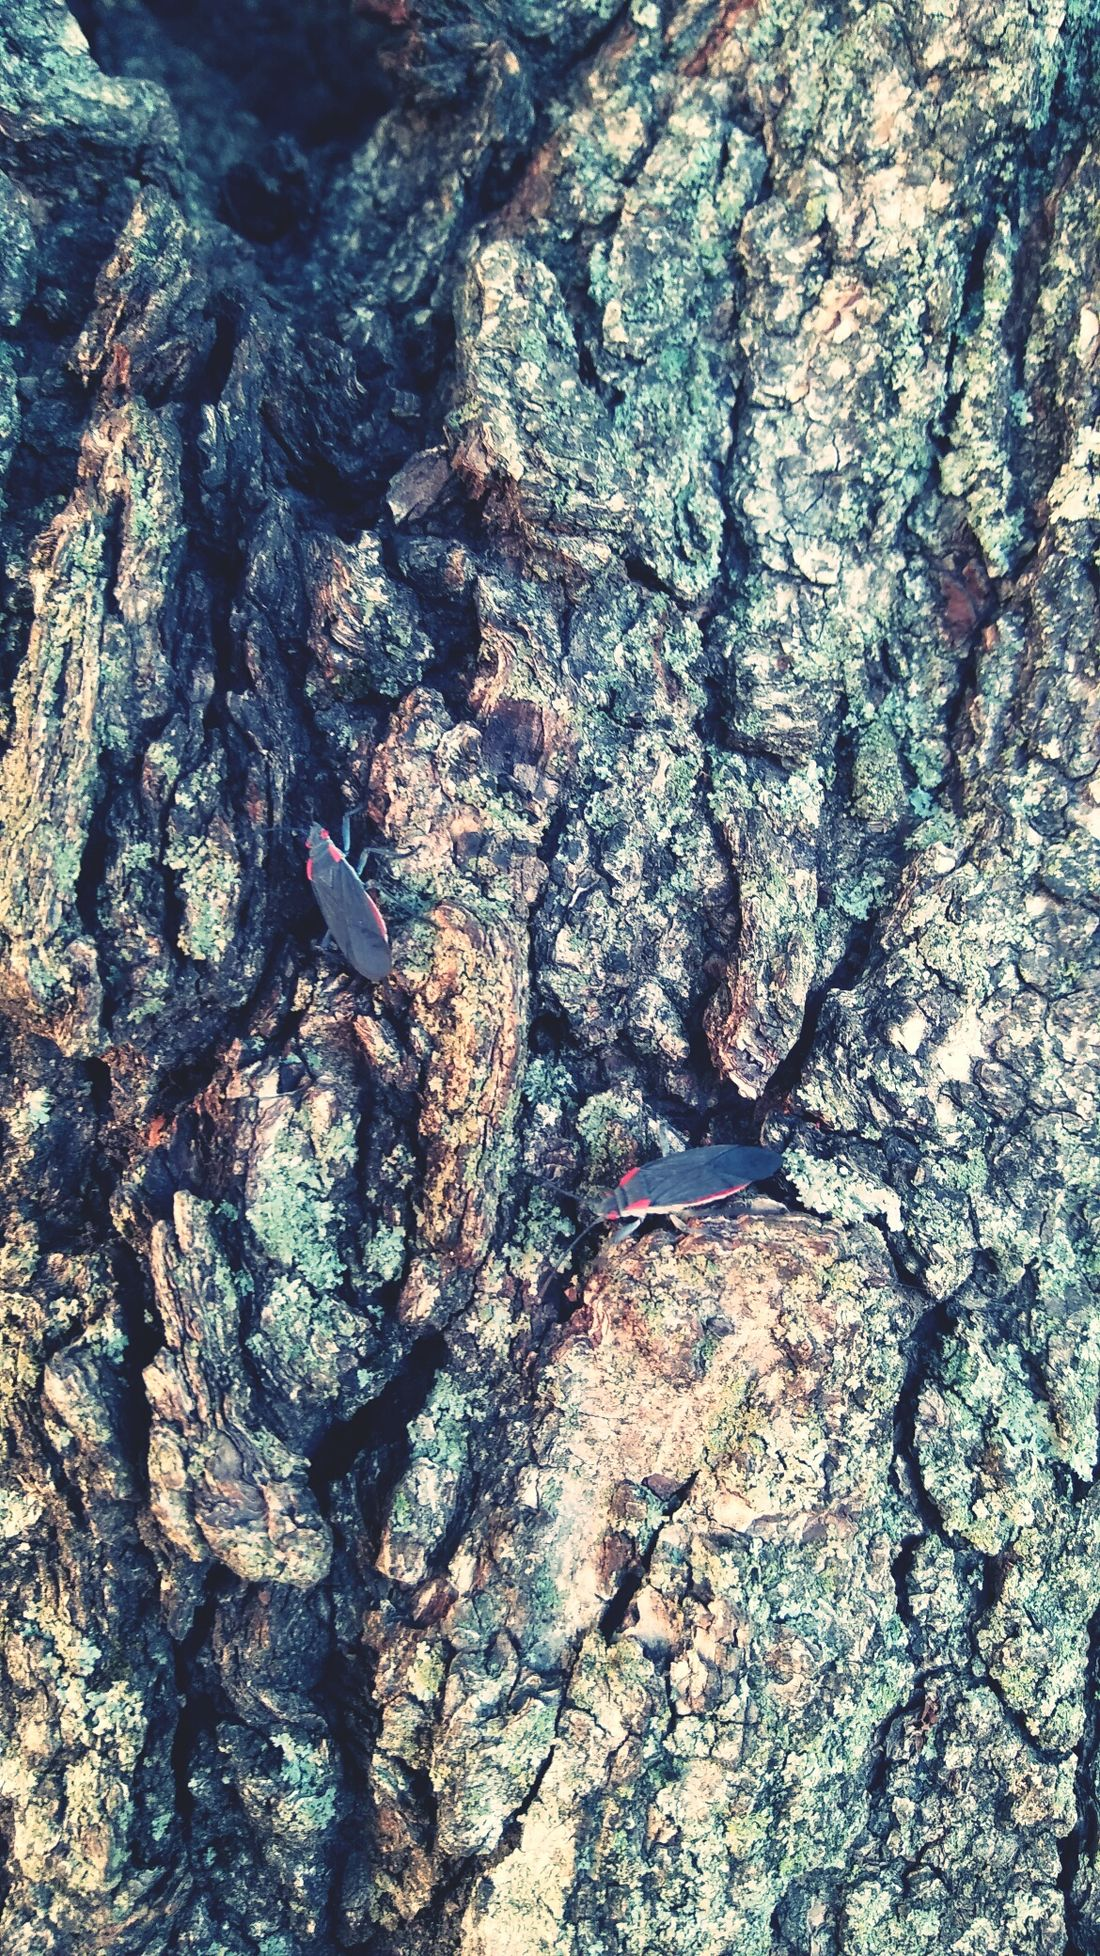 Full Frame No People Close-up Textured  Nature Outdoors Day Close‐up Photography Close-up Shot Close Up Tree Tree Trunk Bark Texture Bark Bug Bugs Bug On A Tree